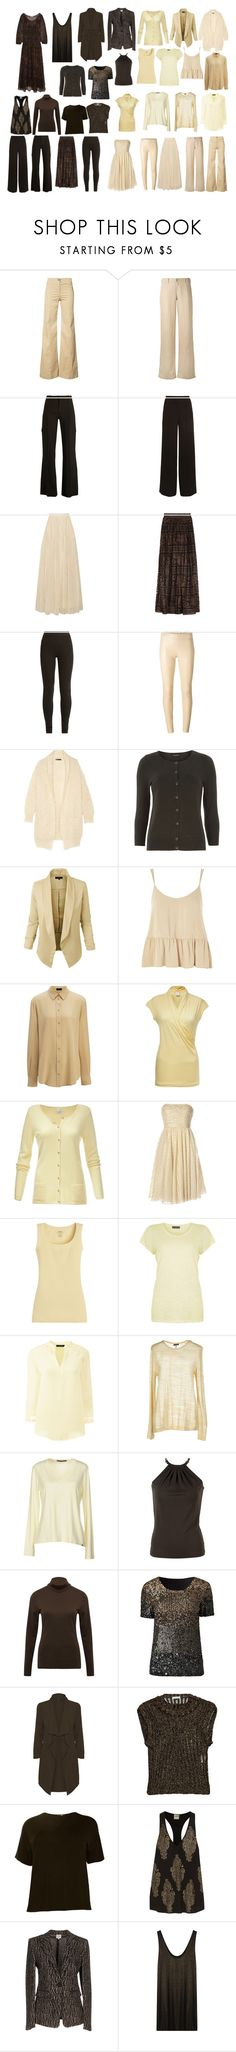 """""""Bases II"""" by pheonix-dt ❤ liked on Polyvore featuring Veronica Beard, Armani Jeans, Chloé, Etro, Brunello Cucinelli, Temperley London, Ryan Roche, Joseph, Maje and Dorothy Perkins"""